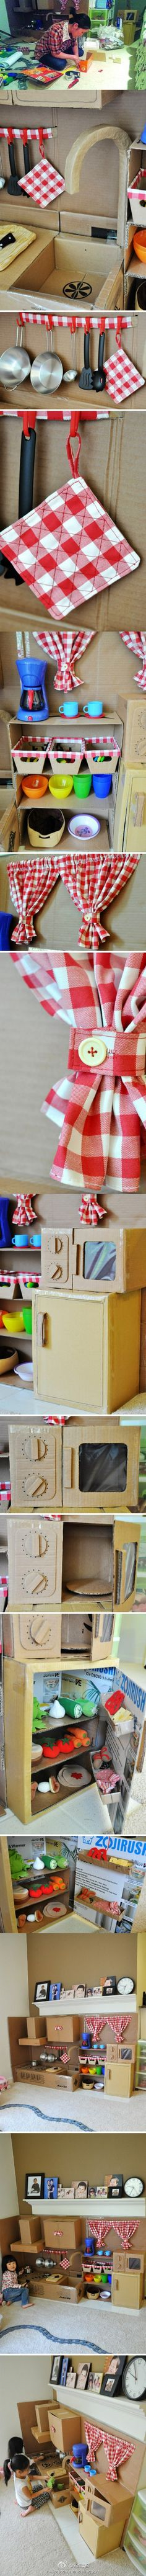 cardboard kitchen Love the microwave! Diy Projects For Men, Diy Gifts For Kids, Diy House Projects, Crafts For Teens, Diy For Kids, Kid Crafts, Cardboard Kitchen, Cardboard Play, Cardboard Crafts